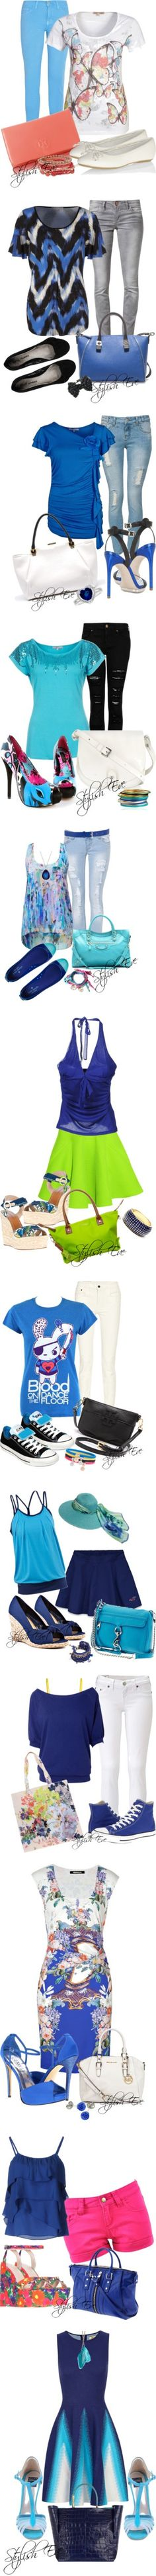 Blue Spring/ Summer 2013 Outfits for Women by Stylish ...